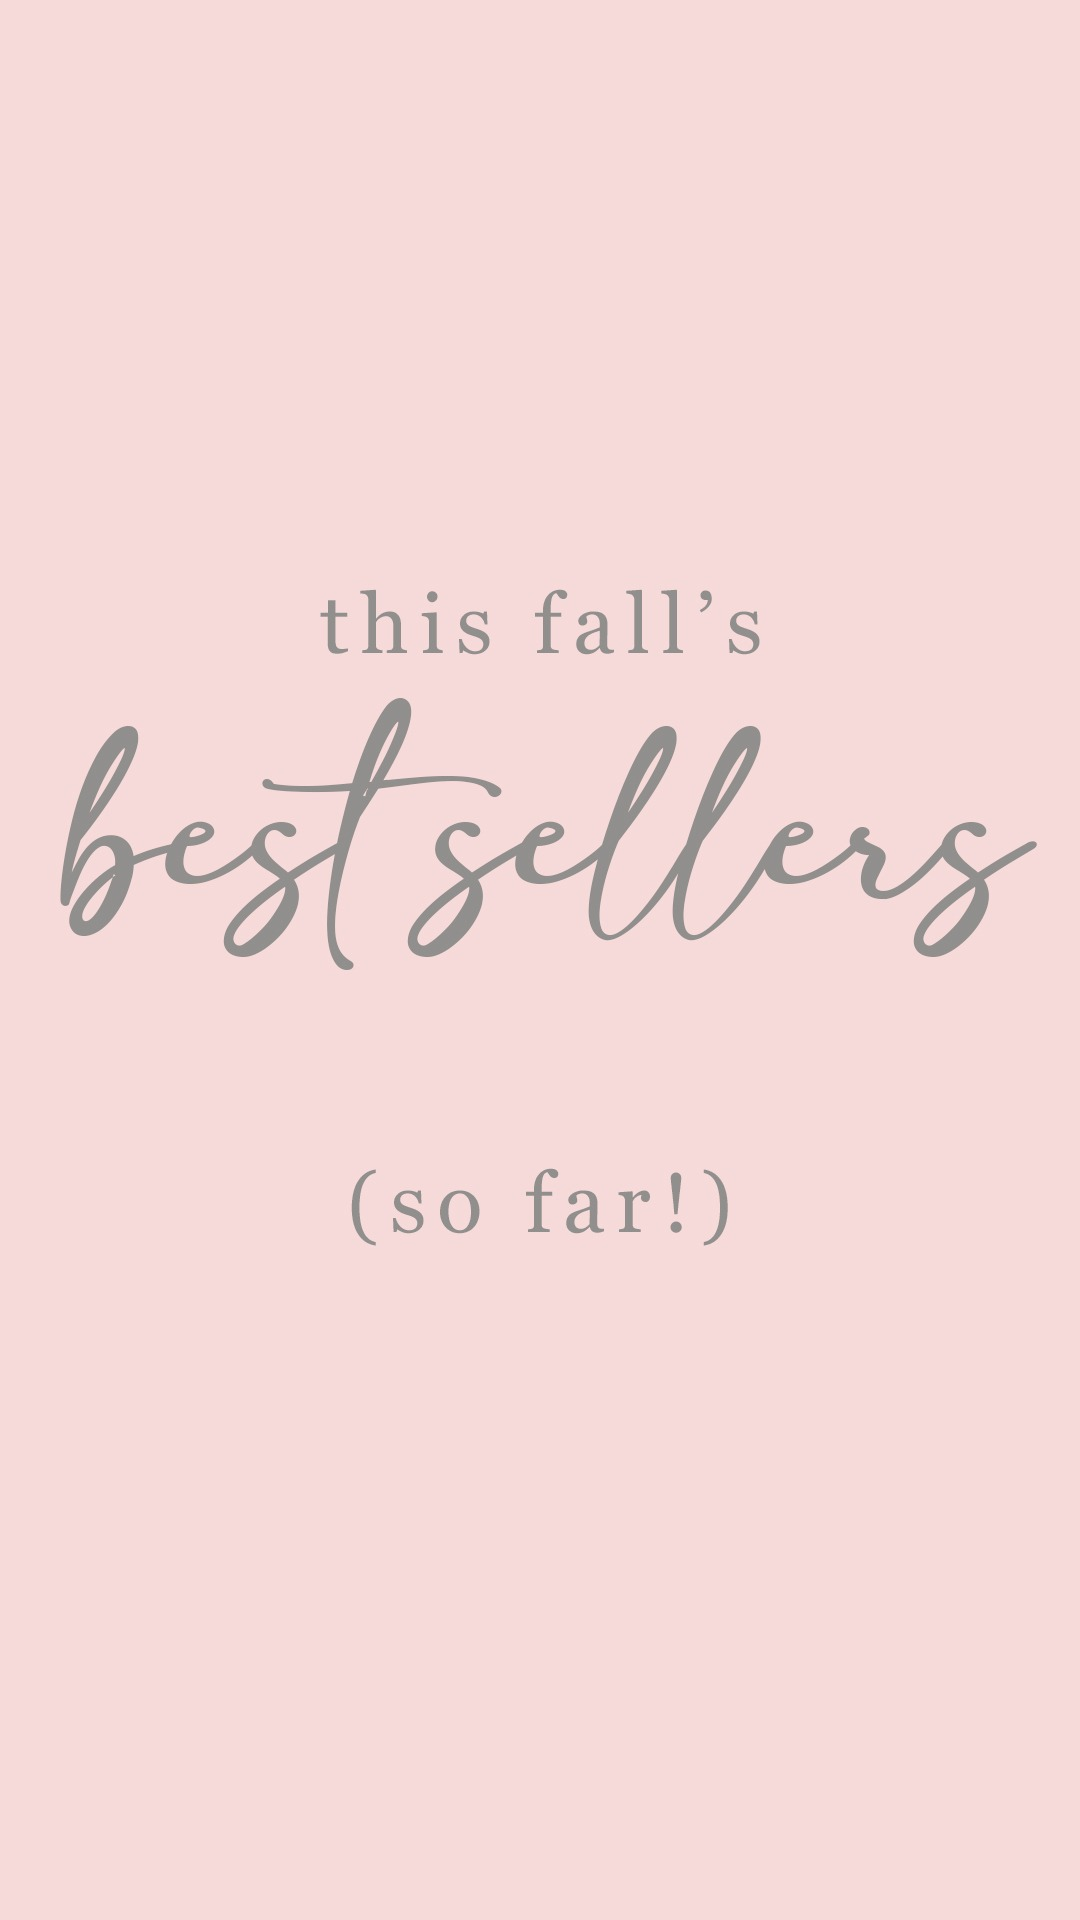 The fall's best sellers (so far!)